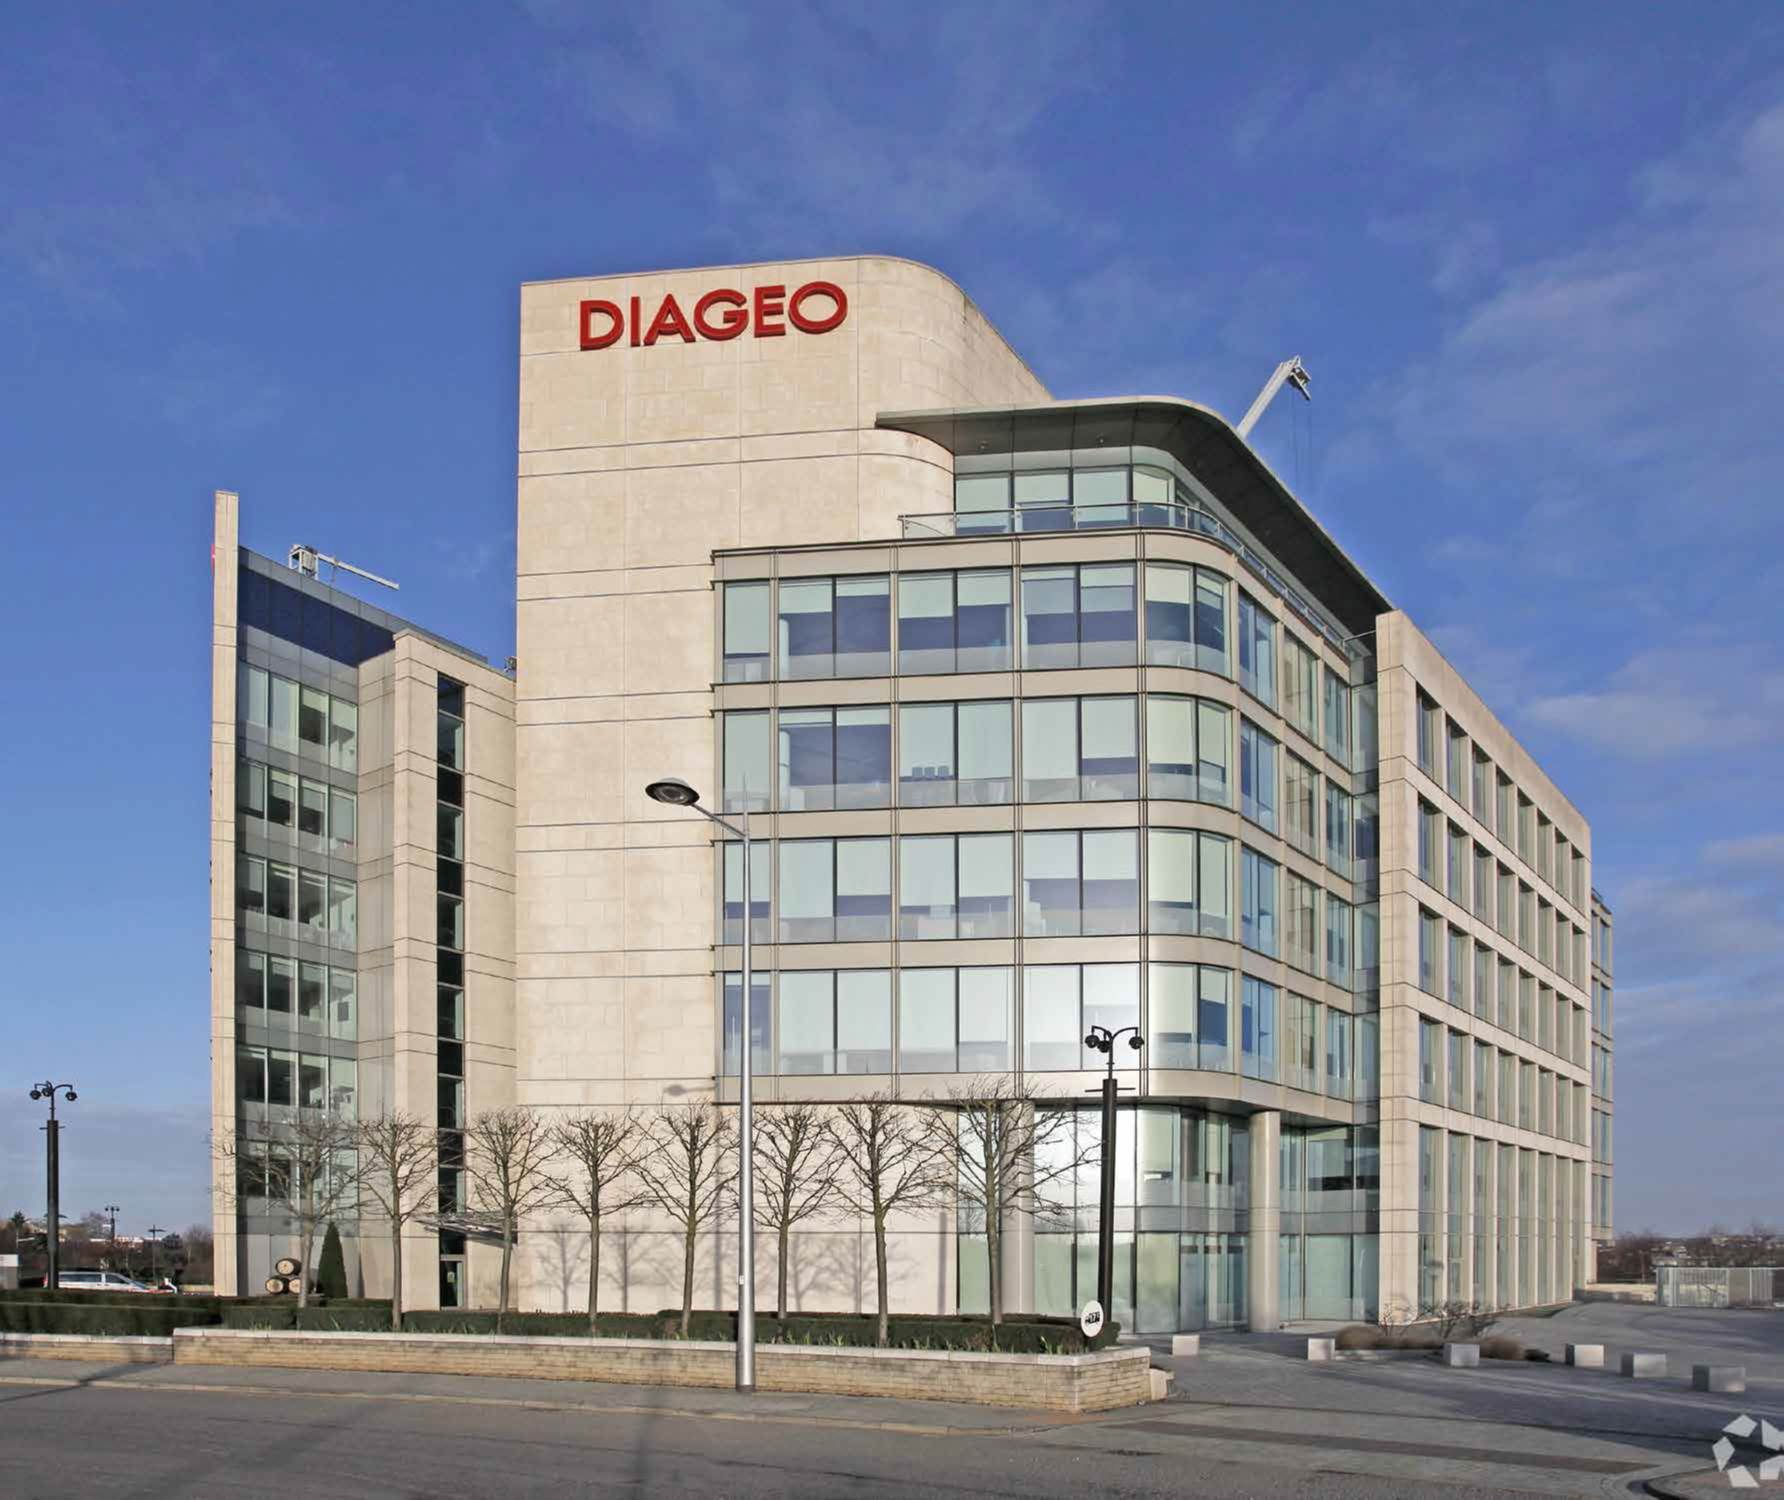 Diageo Global HQ, Park Royal - 158,056 sq ft, £85,000,000, Sold: London & Regional Properties